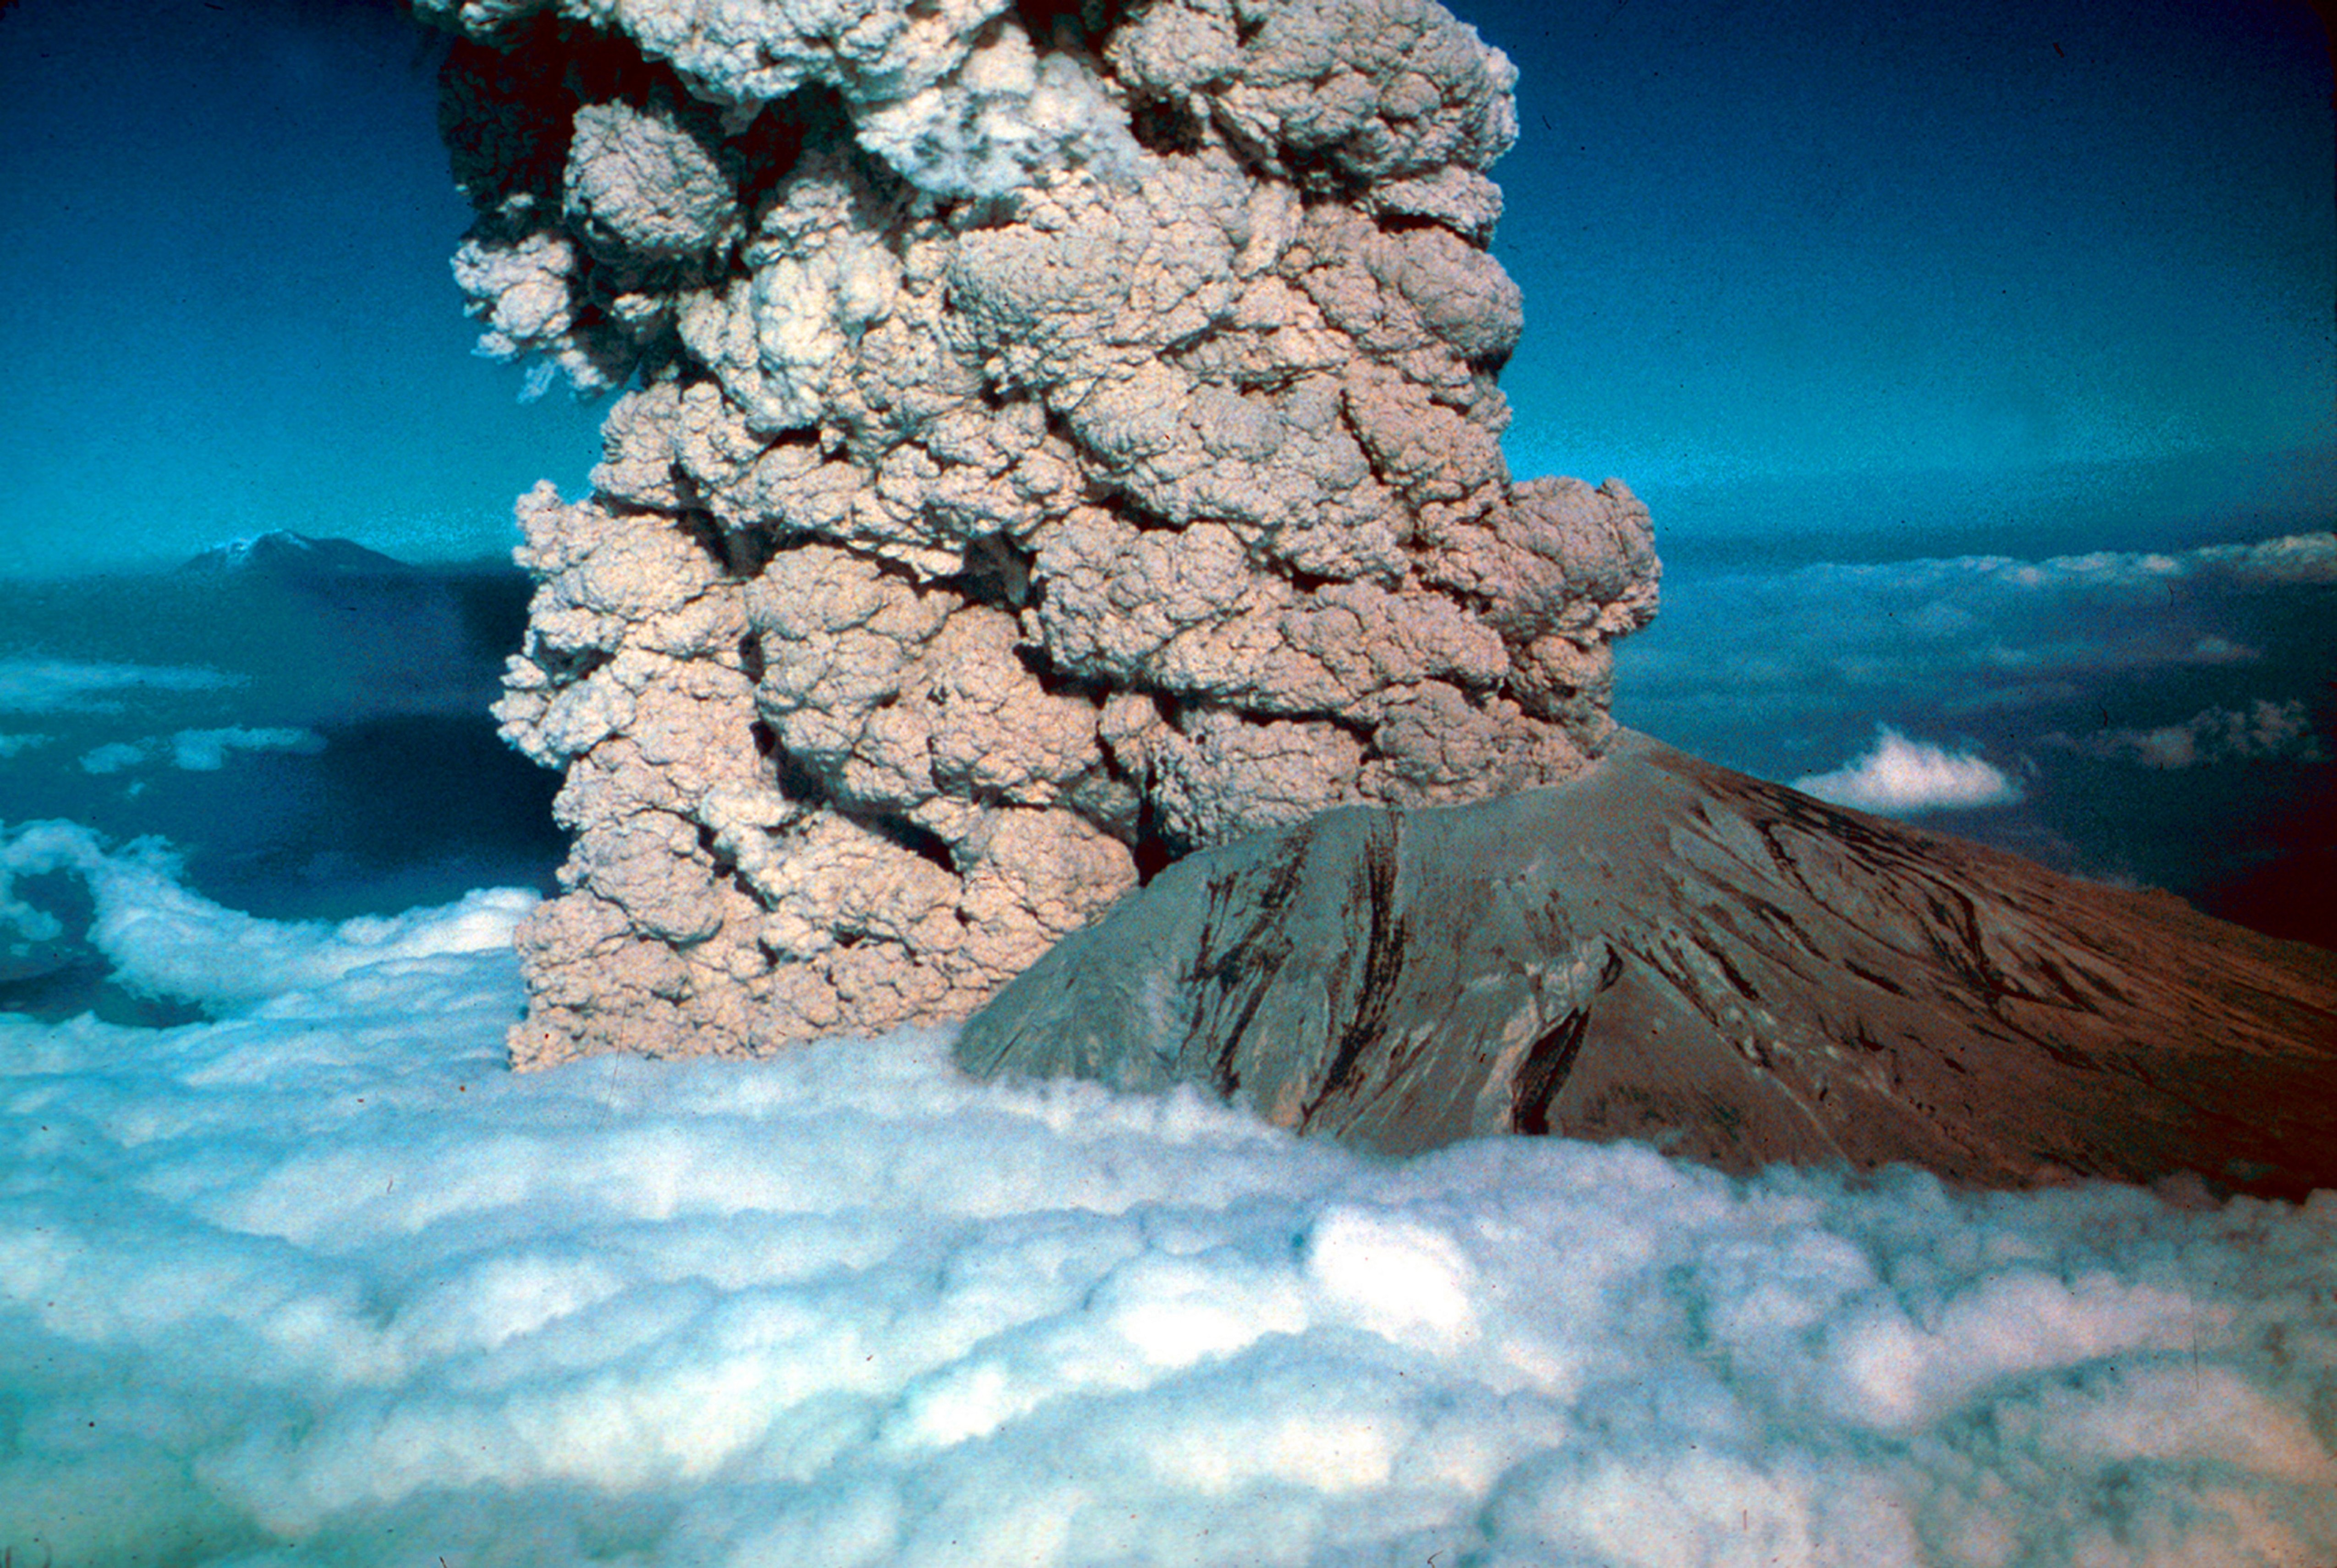 In 1980, a major volcanic eruption occurred at Mount St Helens, a volcano located in state of Washington, in the United States.